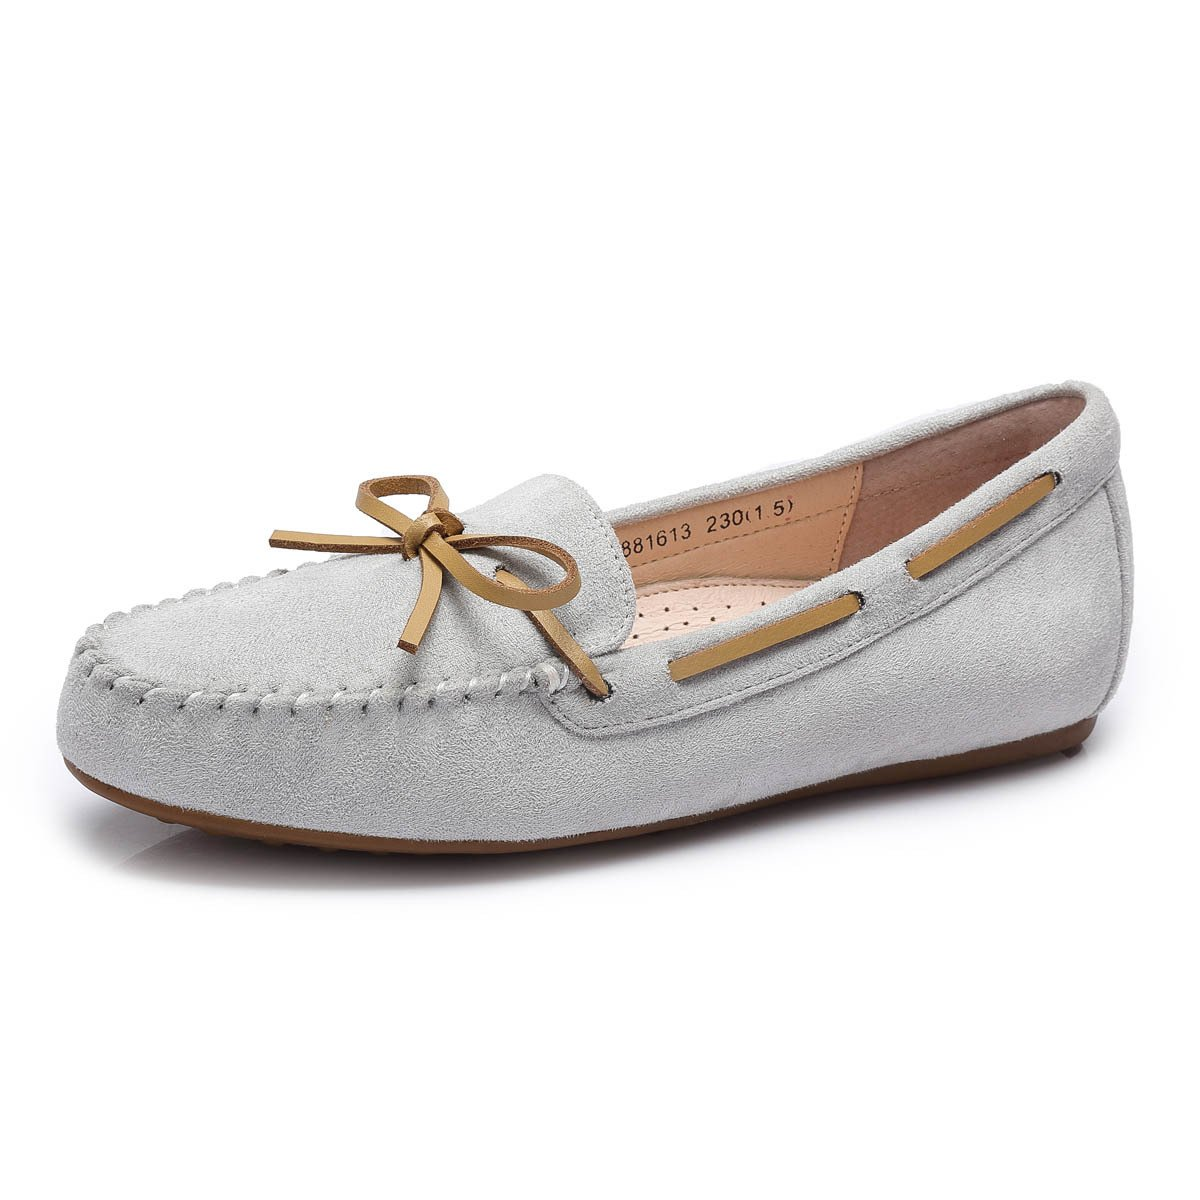 Camel Women's Bow Detailing Anti-Slipping Driving Style Moccasin Slip on Loafers Color Grey Size 6